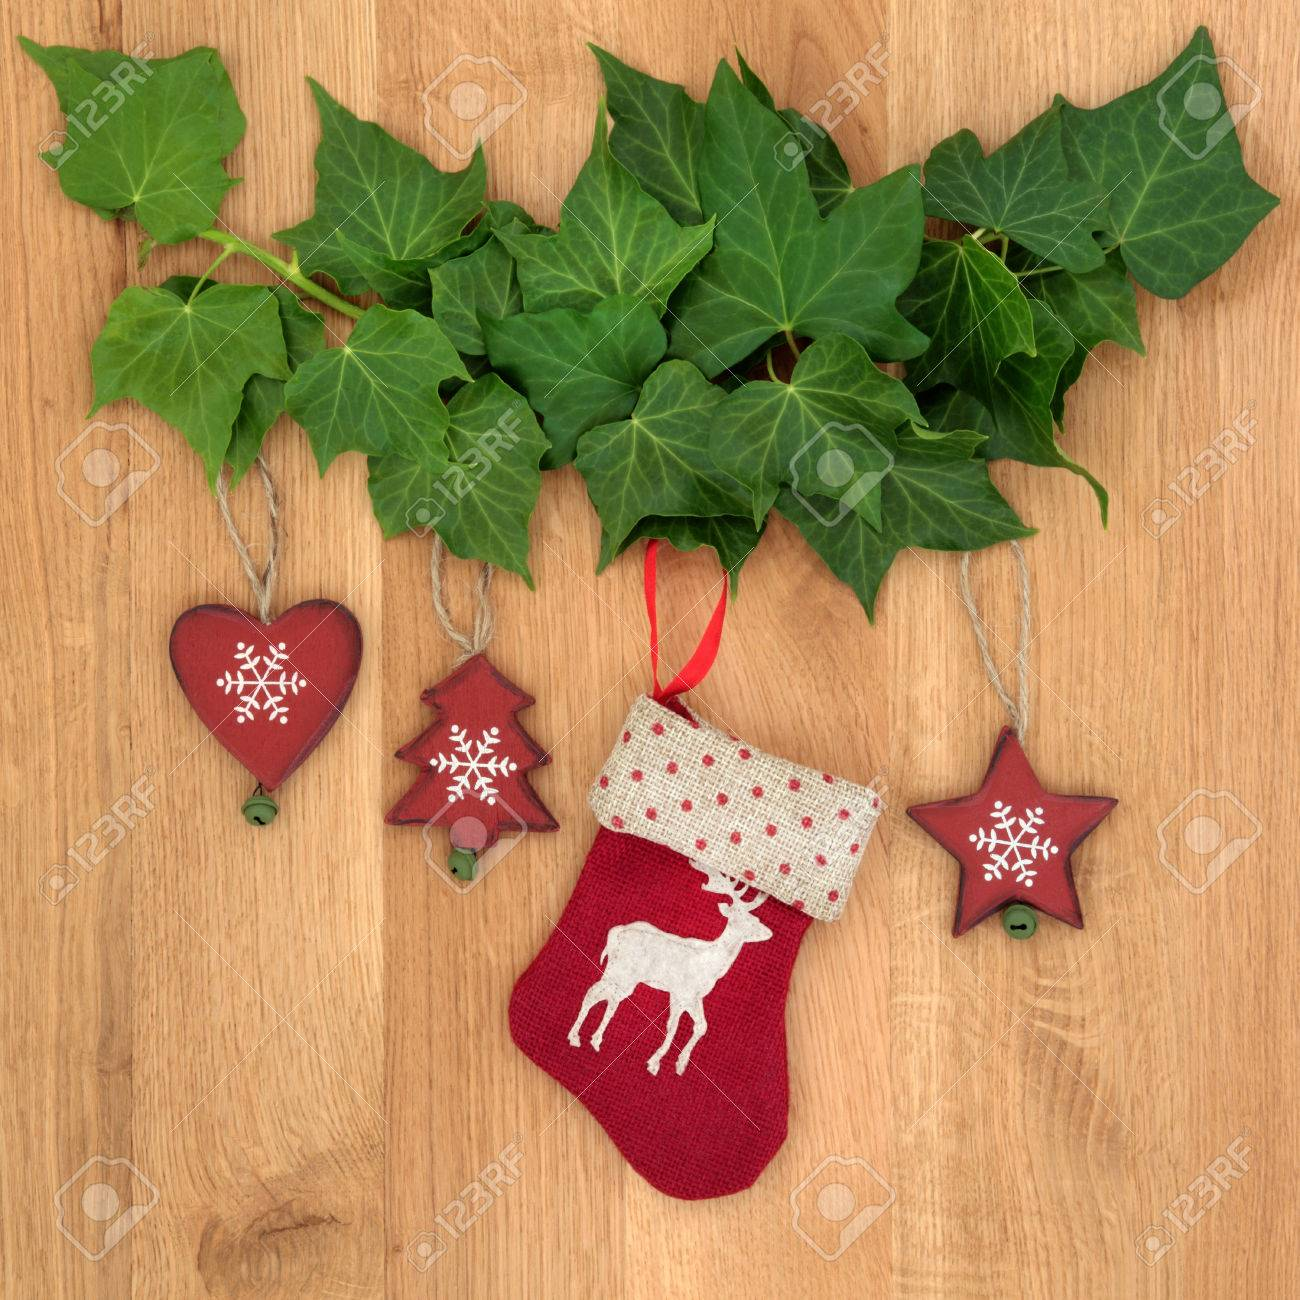 Christmas Eve Symbols Of Red Stocking Tree Star And Heart With